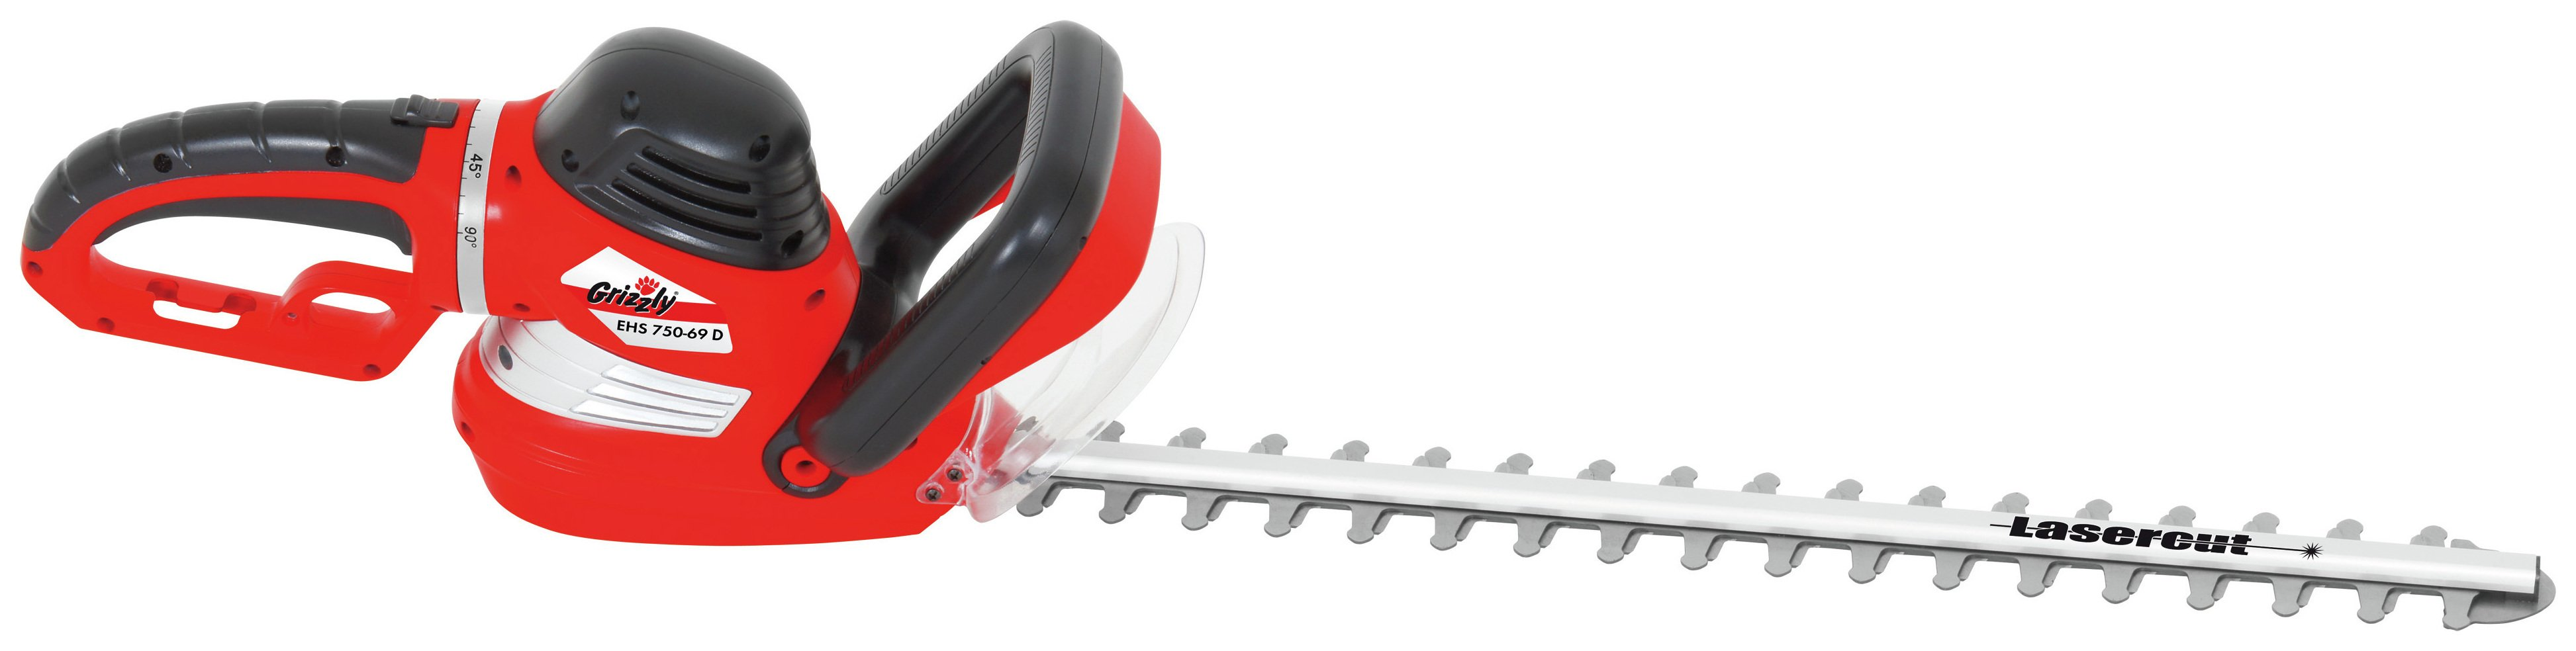 Image of Grizzly Tools ehs750-69d 69cm Corded Hedge Trimmer - 750W